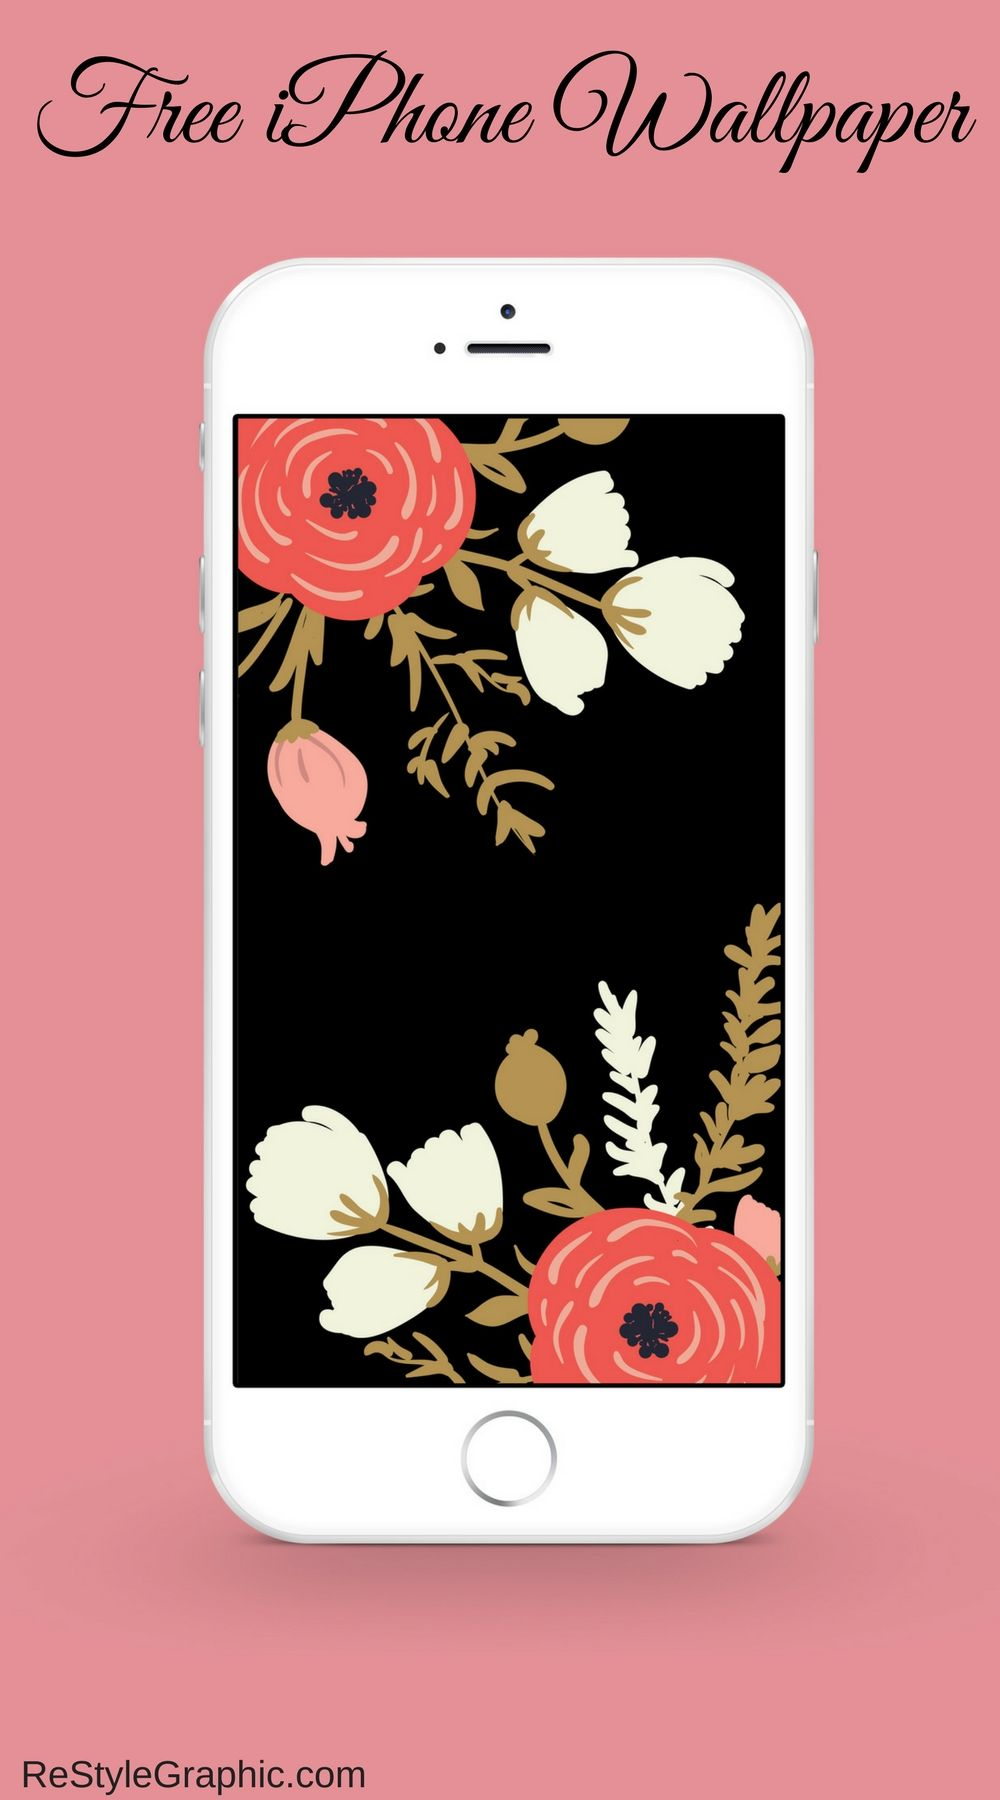 Download Free Wallpaper For Iphone Restylegraphic Etsy Game Free Iphone Wallpaper Iphone Wallpaper